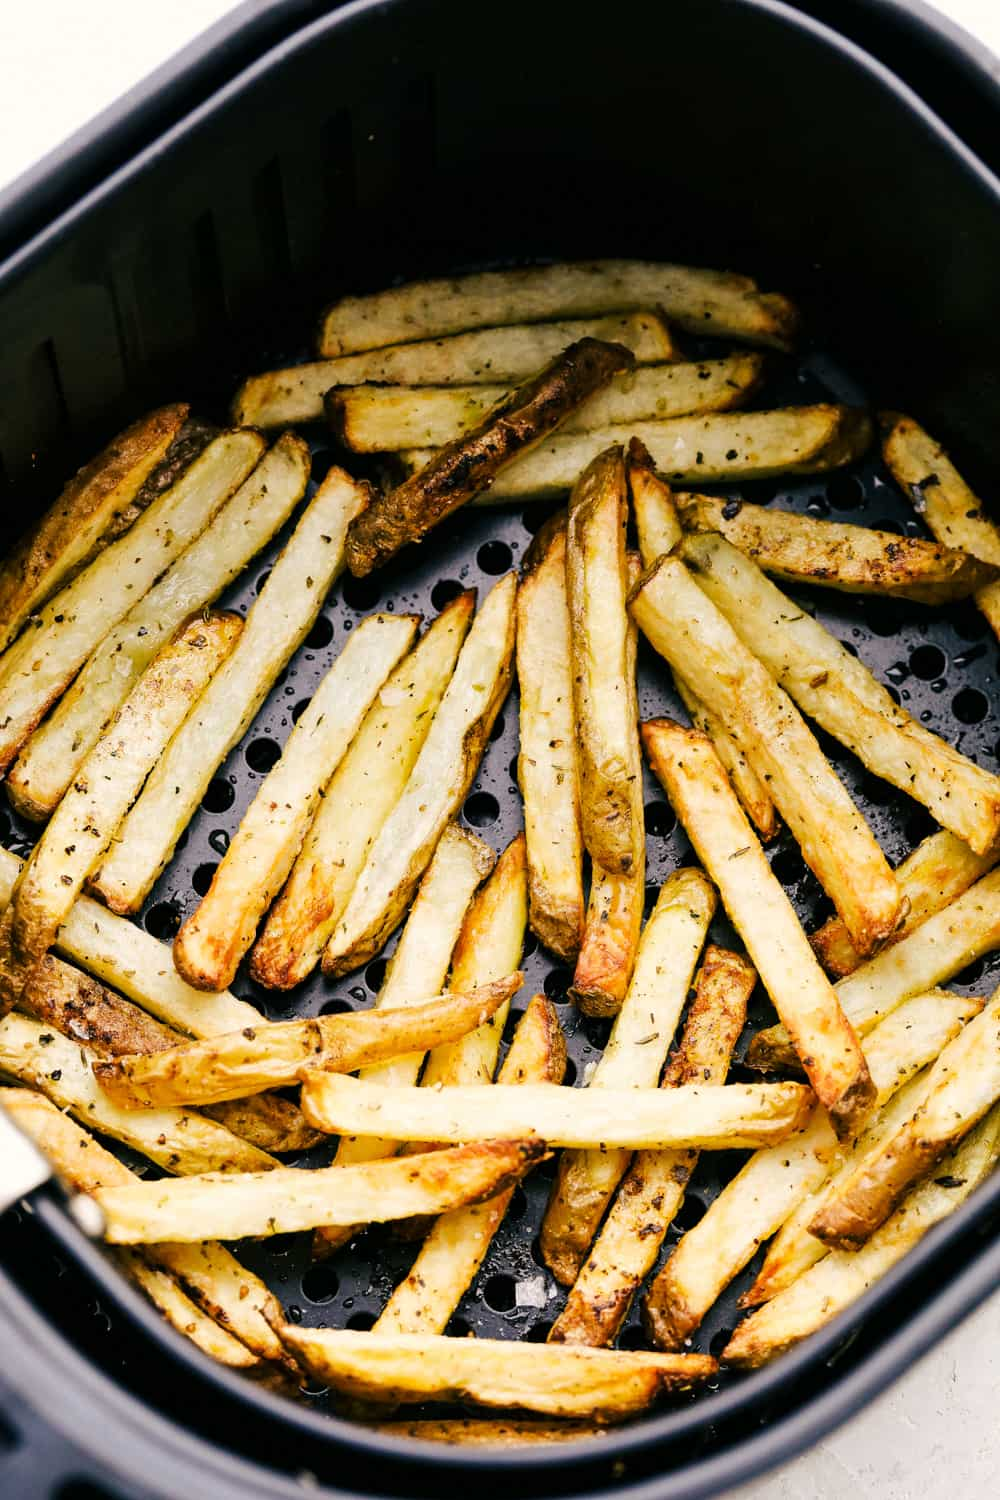 Crispy outside, tender inside amazing air fryer french fries.